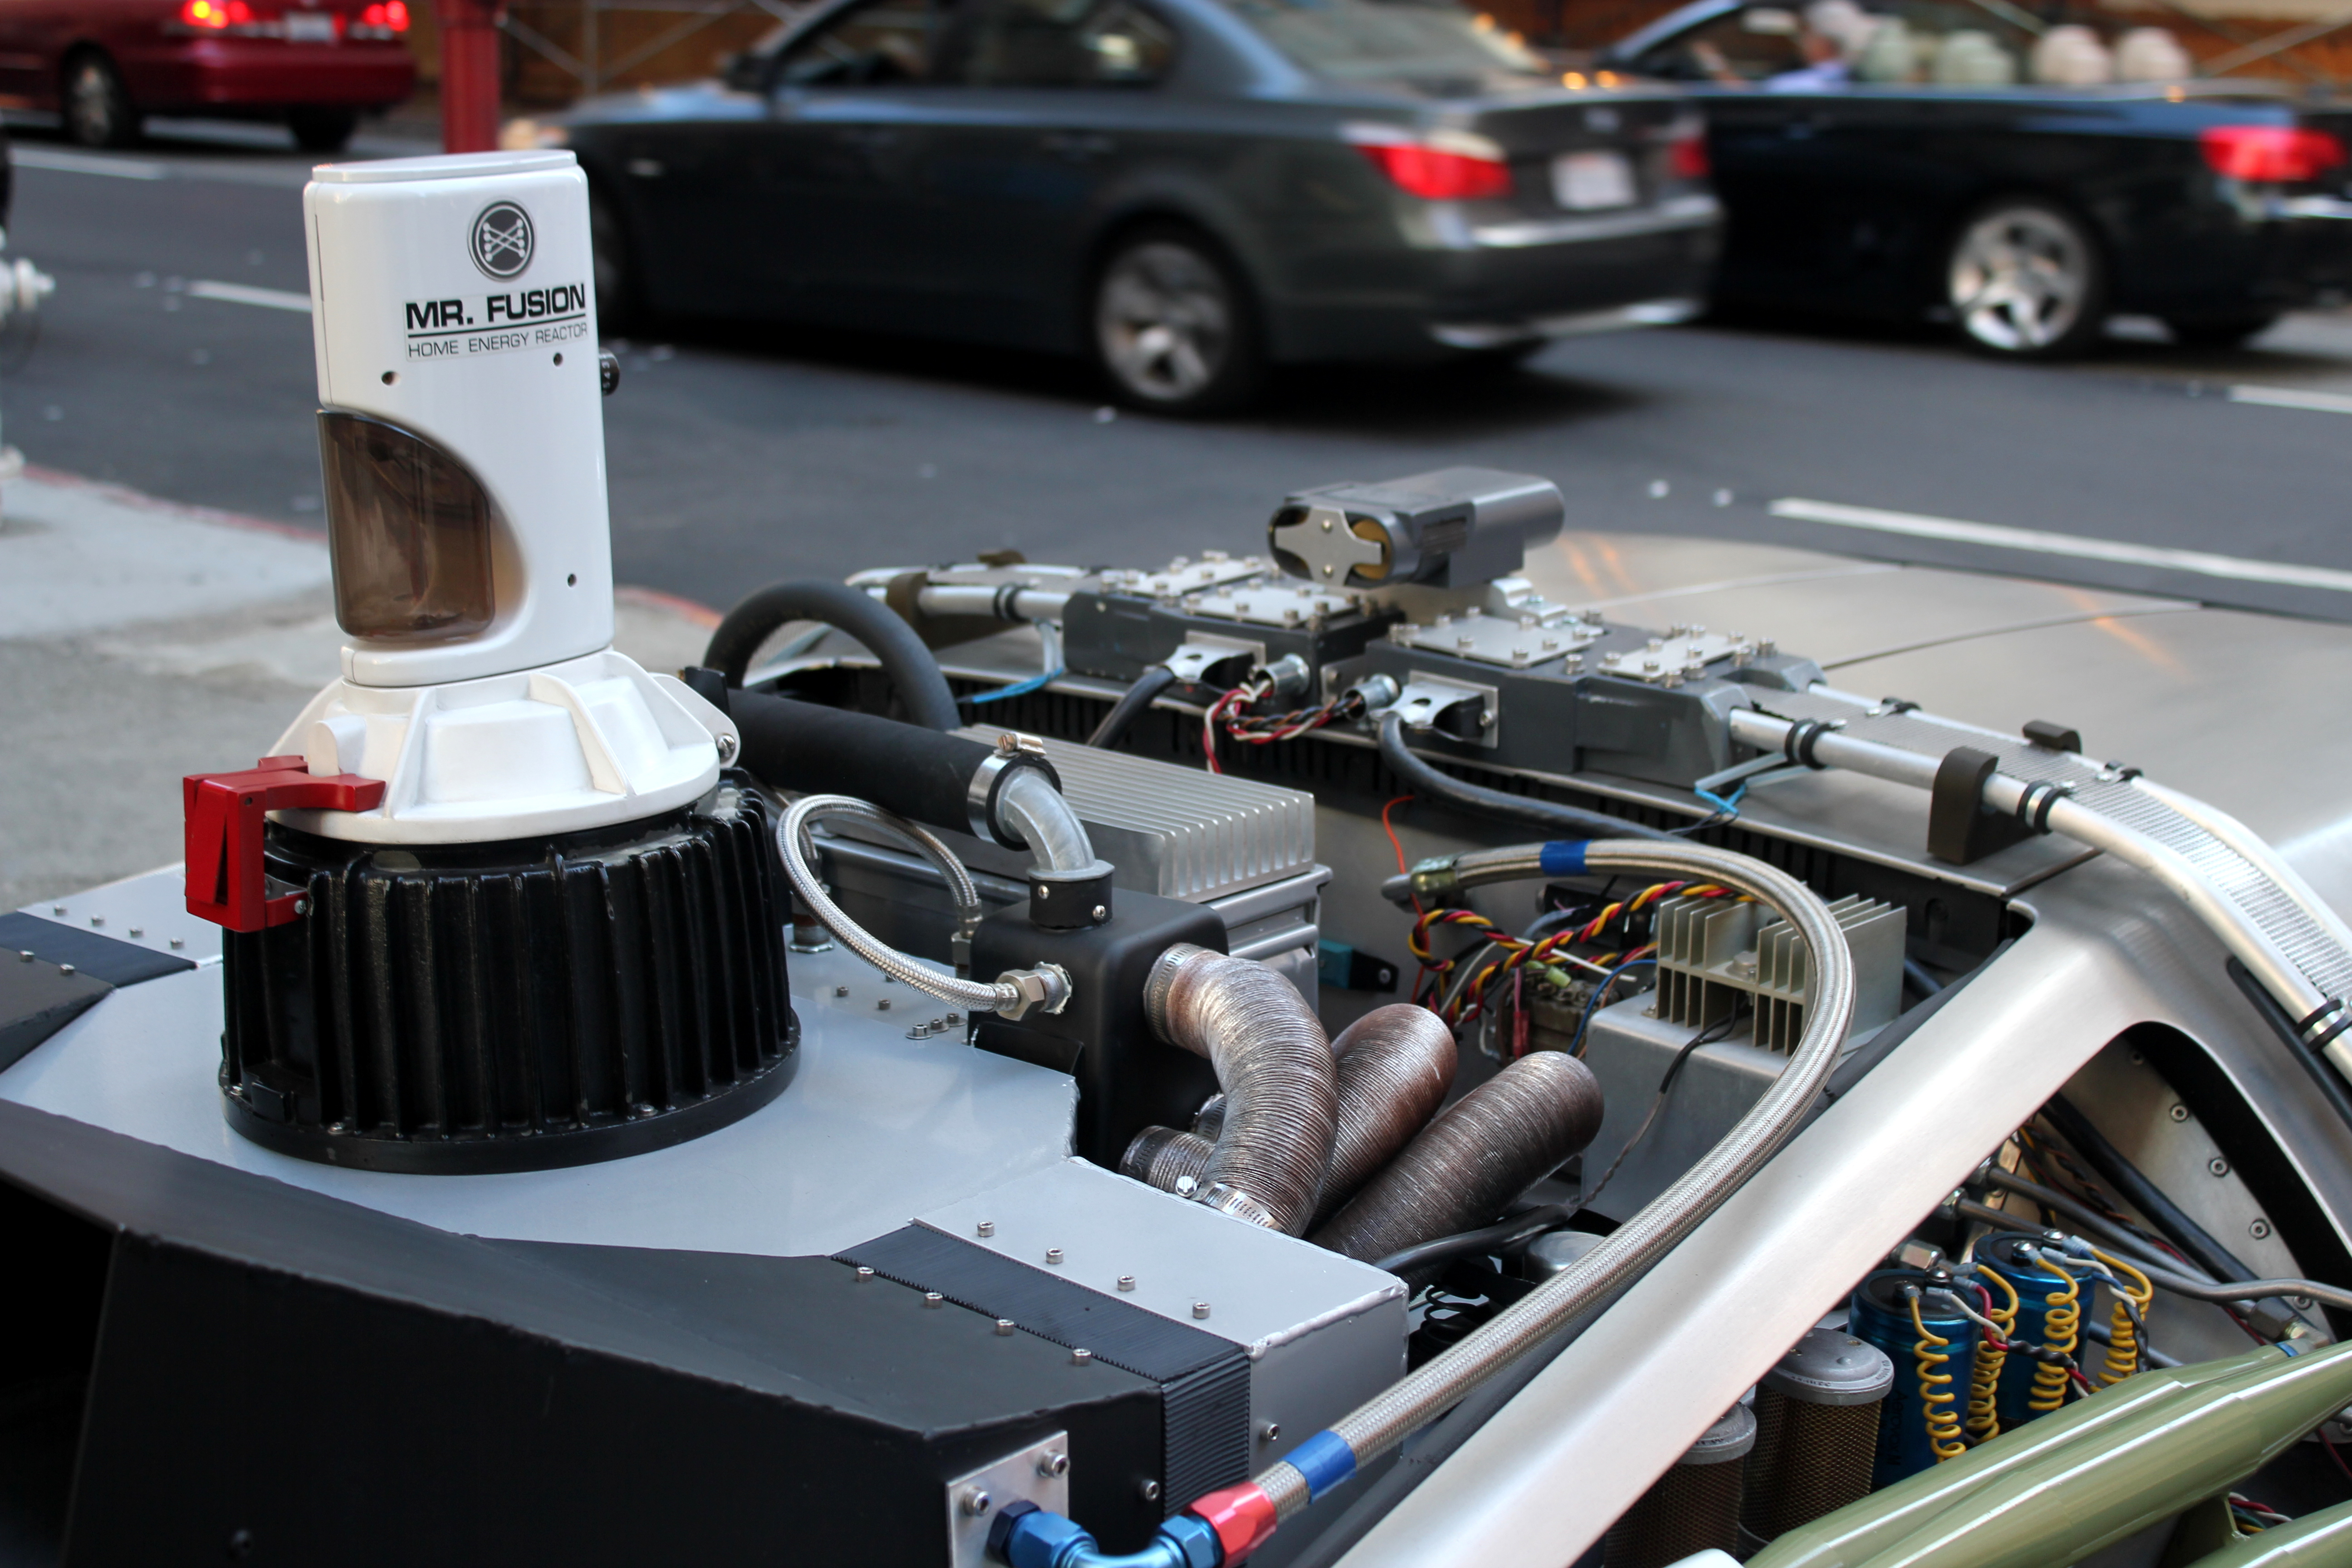 Replica del Mr. Fusion Home Energy Reactor della DeLorean di Ritorno al Futuro. Credit: Ed g2s/Wikipedia